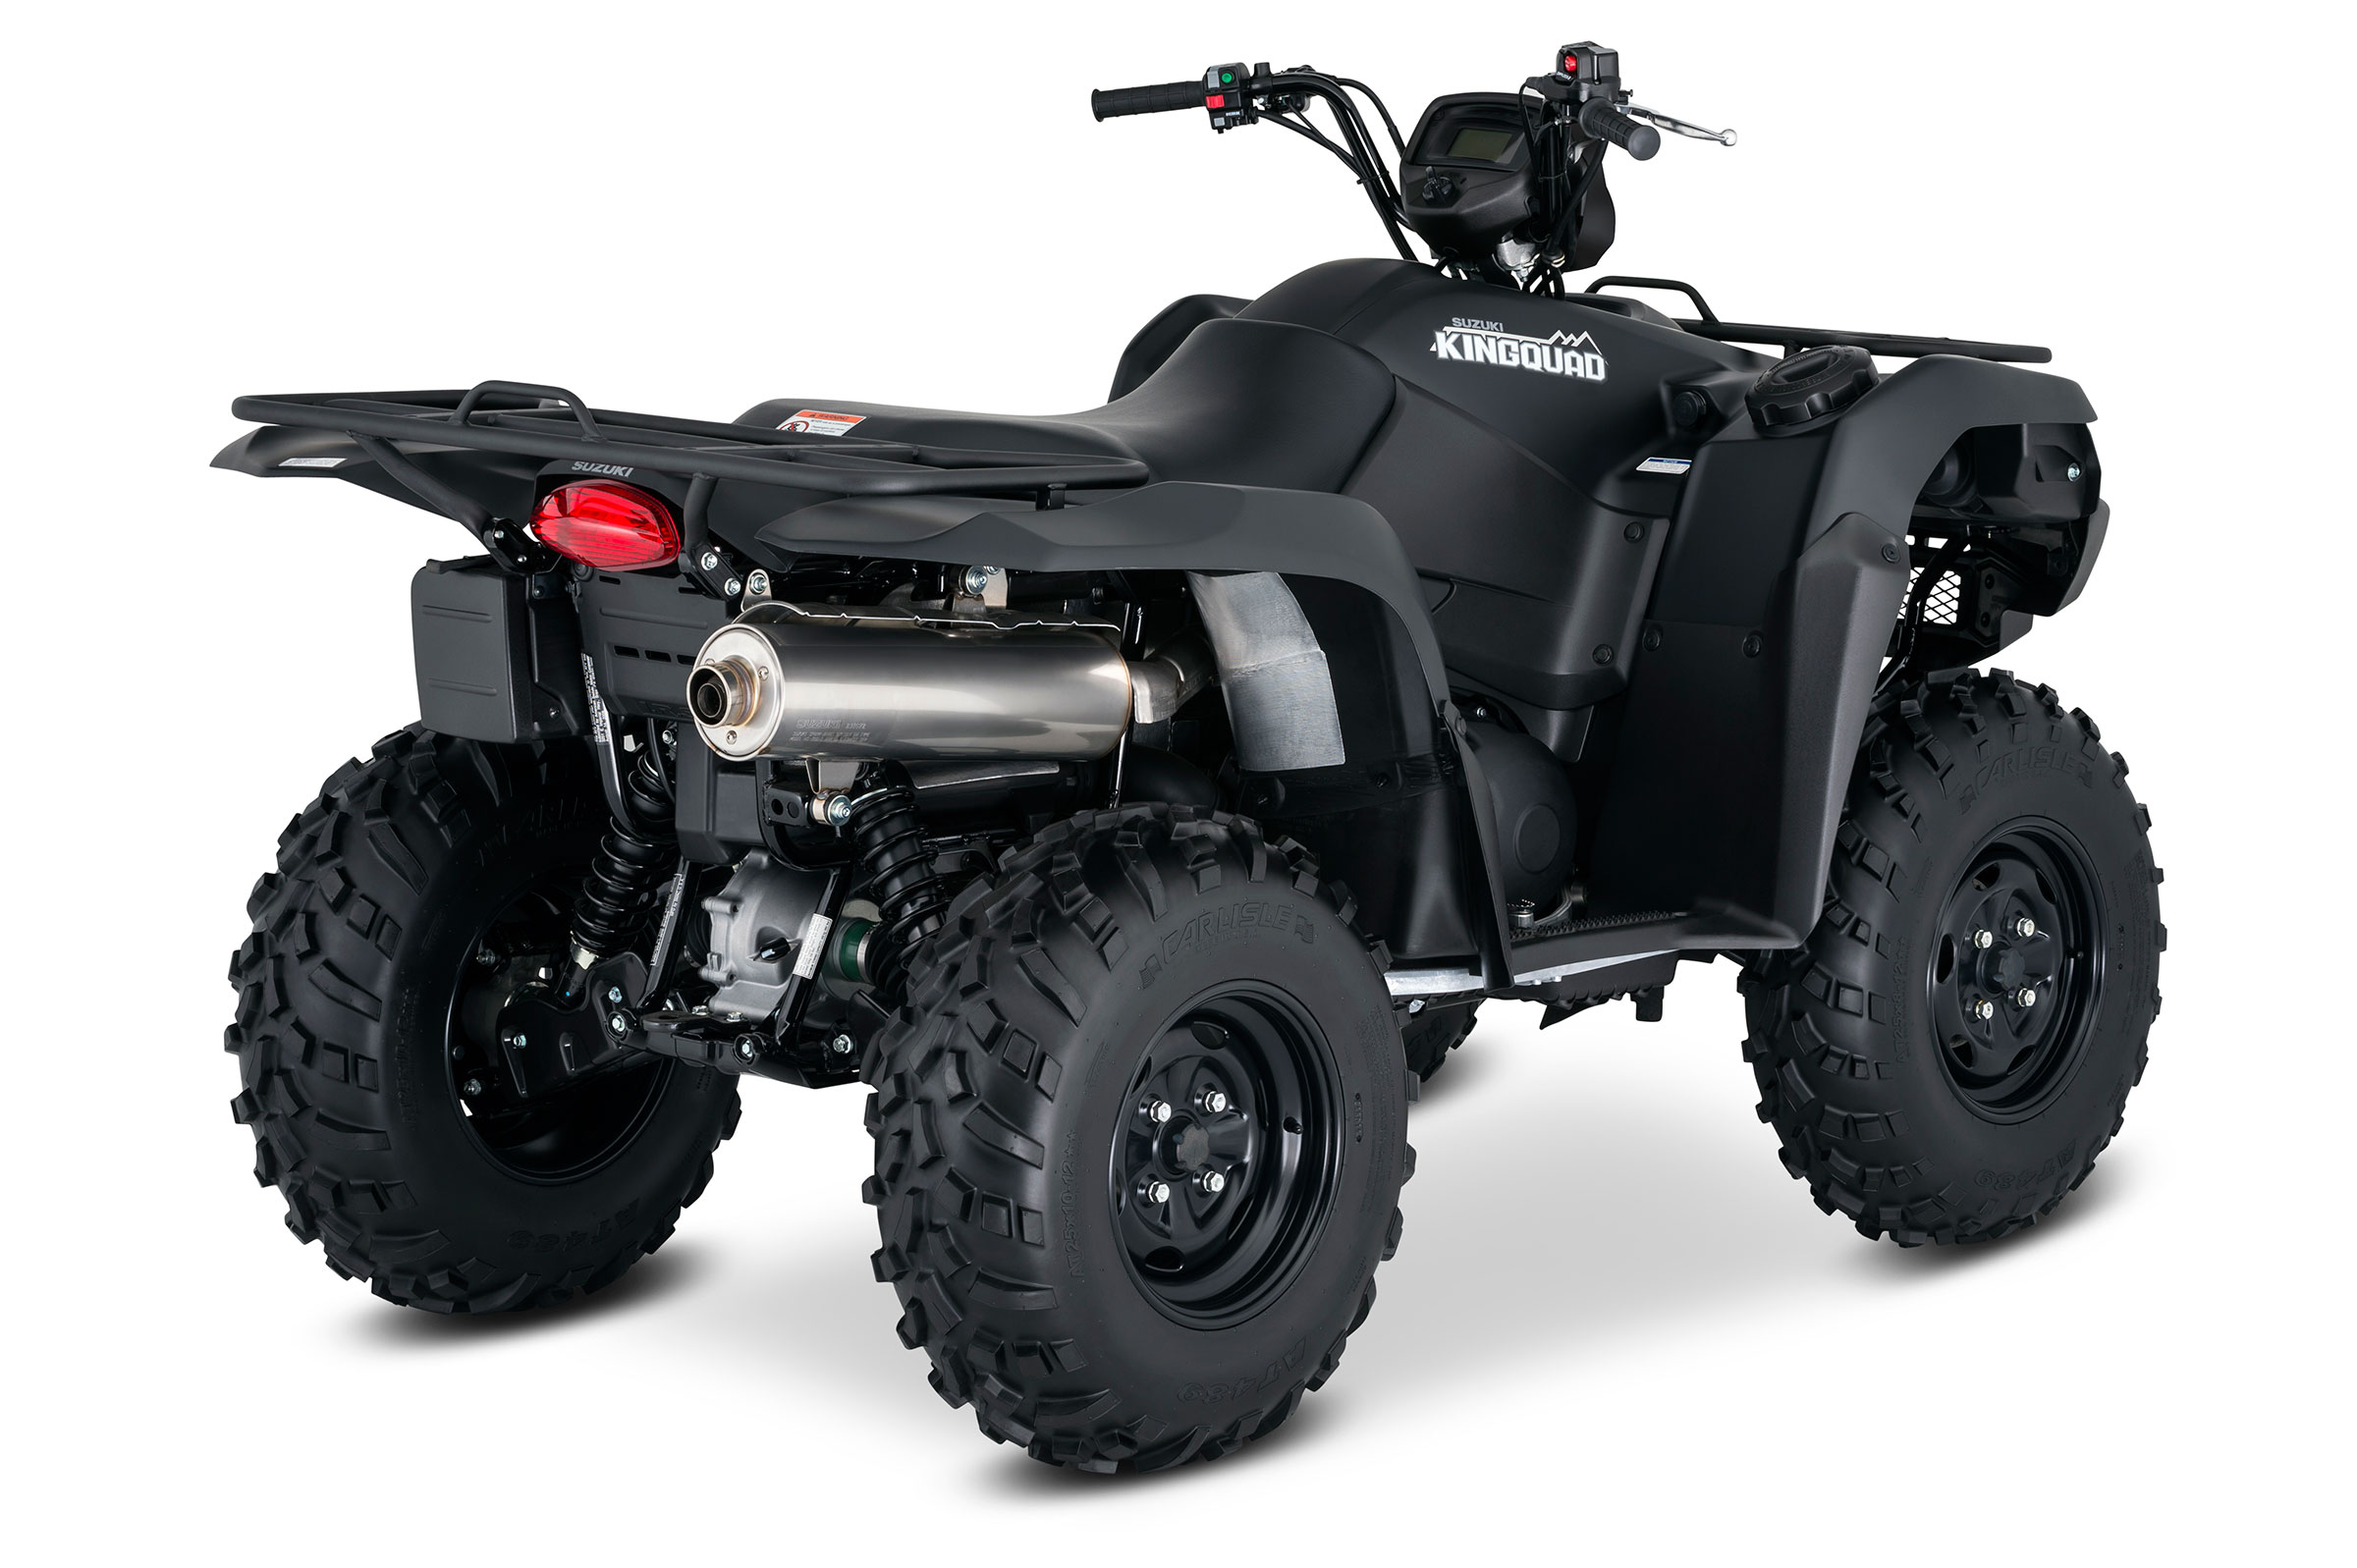 2018 suzuki kingquad 750axi power steering special edition. Black Bedroom Furniture Sets. Home Design Ideas